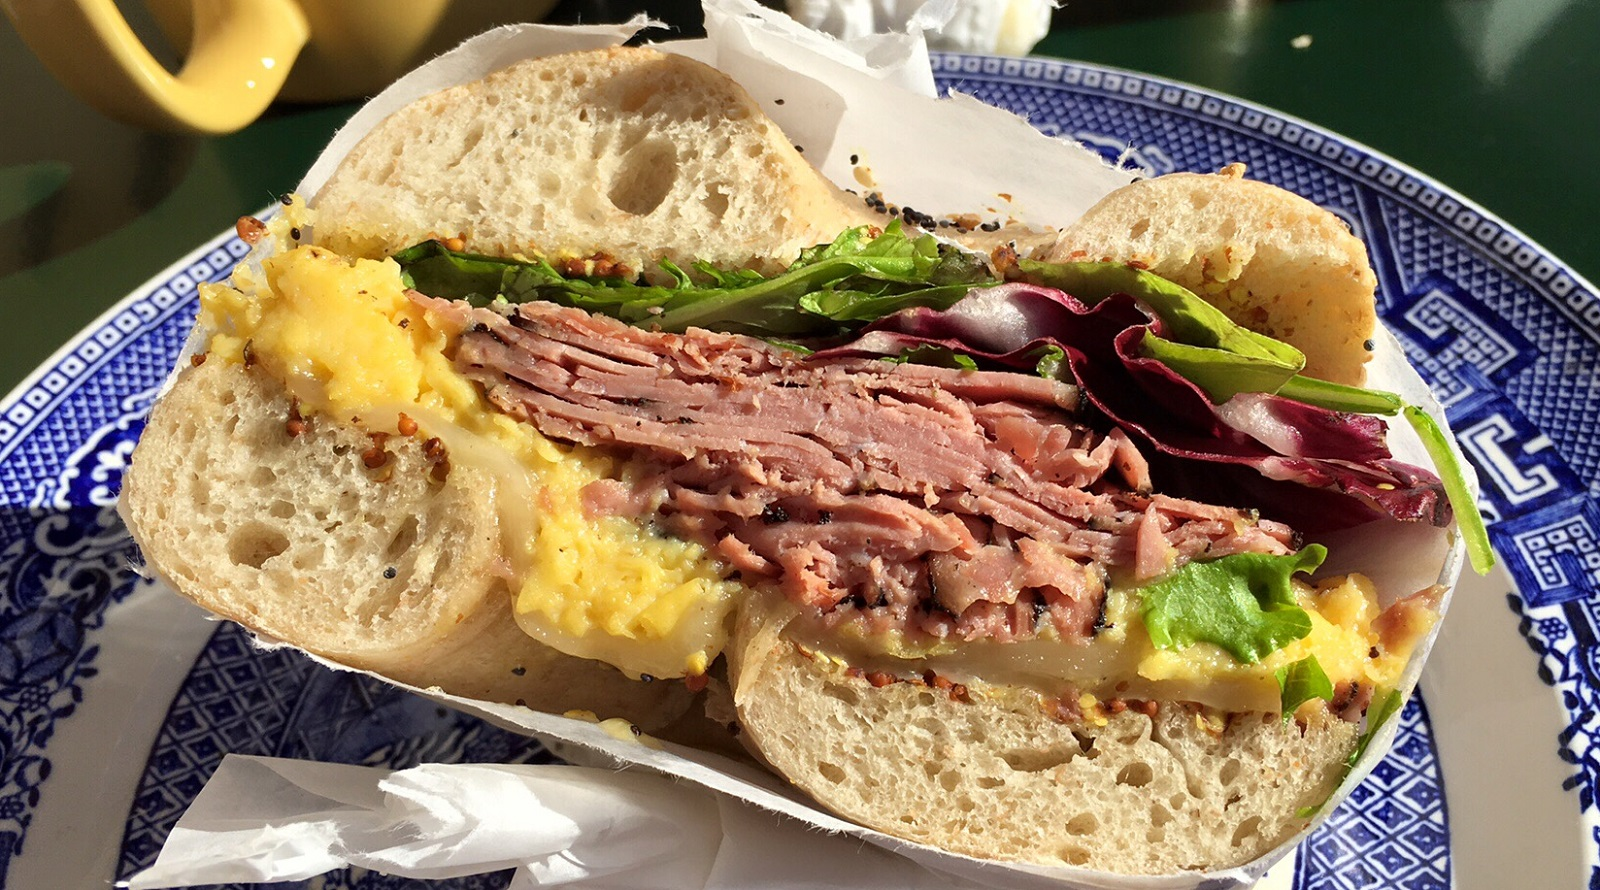 The Courtney ($6) was topped with pastrami, eggs, Swiss cheese, greens and mustard. (Nick Guy/Special to The News)